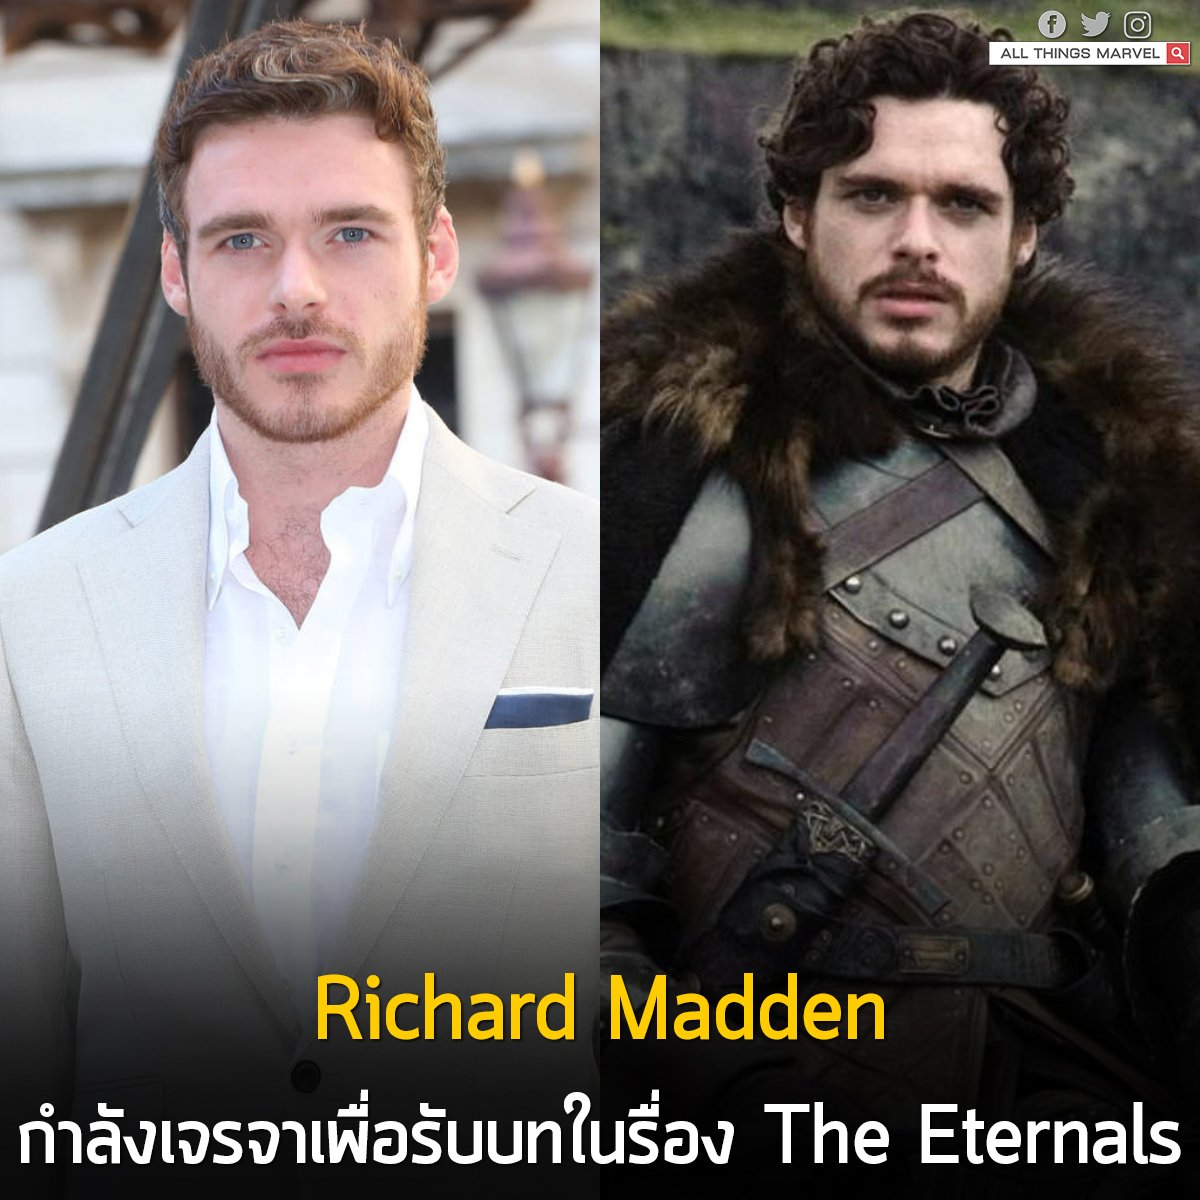 All Things Marvel's photo on Richard Madden